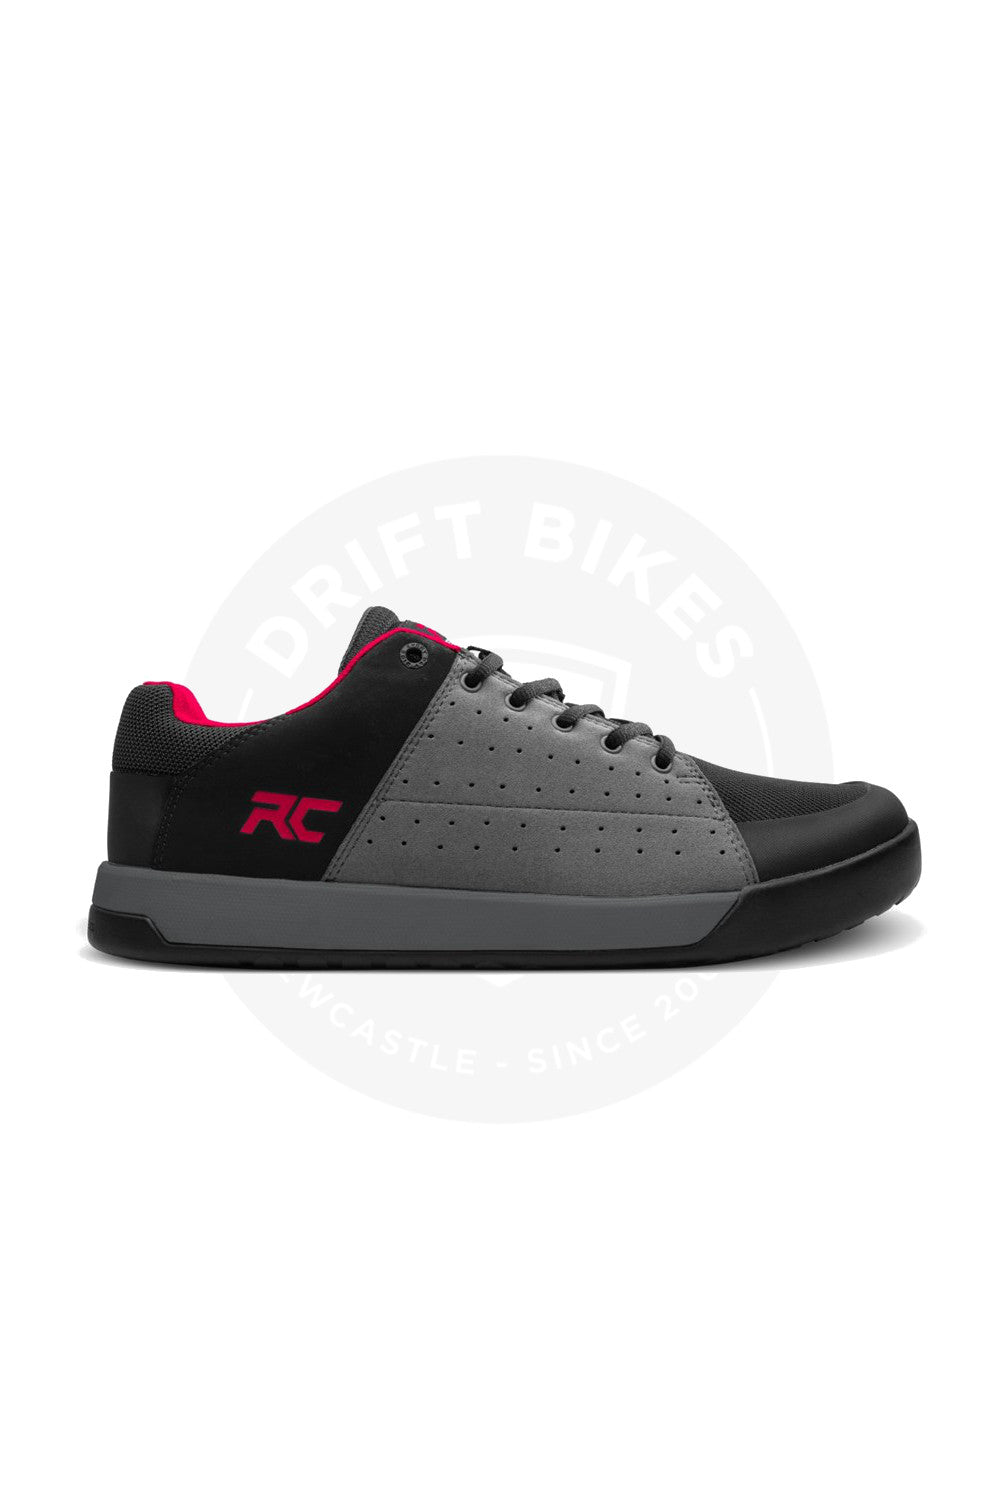 RIDE CONCEPTS LIVEWIRE  YOUTH FLAT SHOE